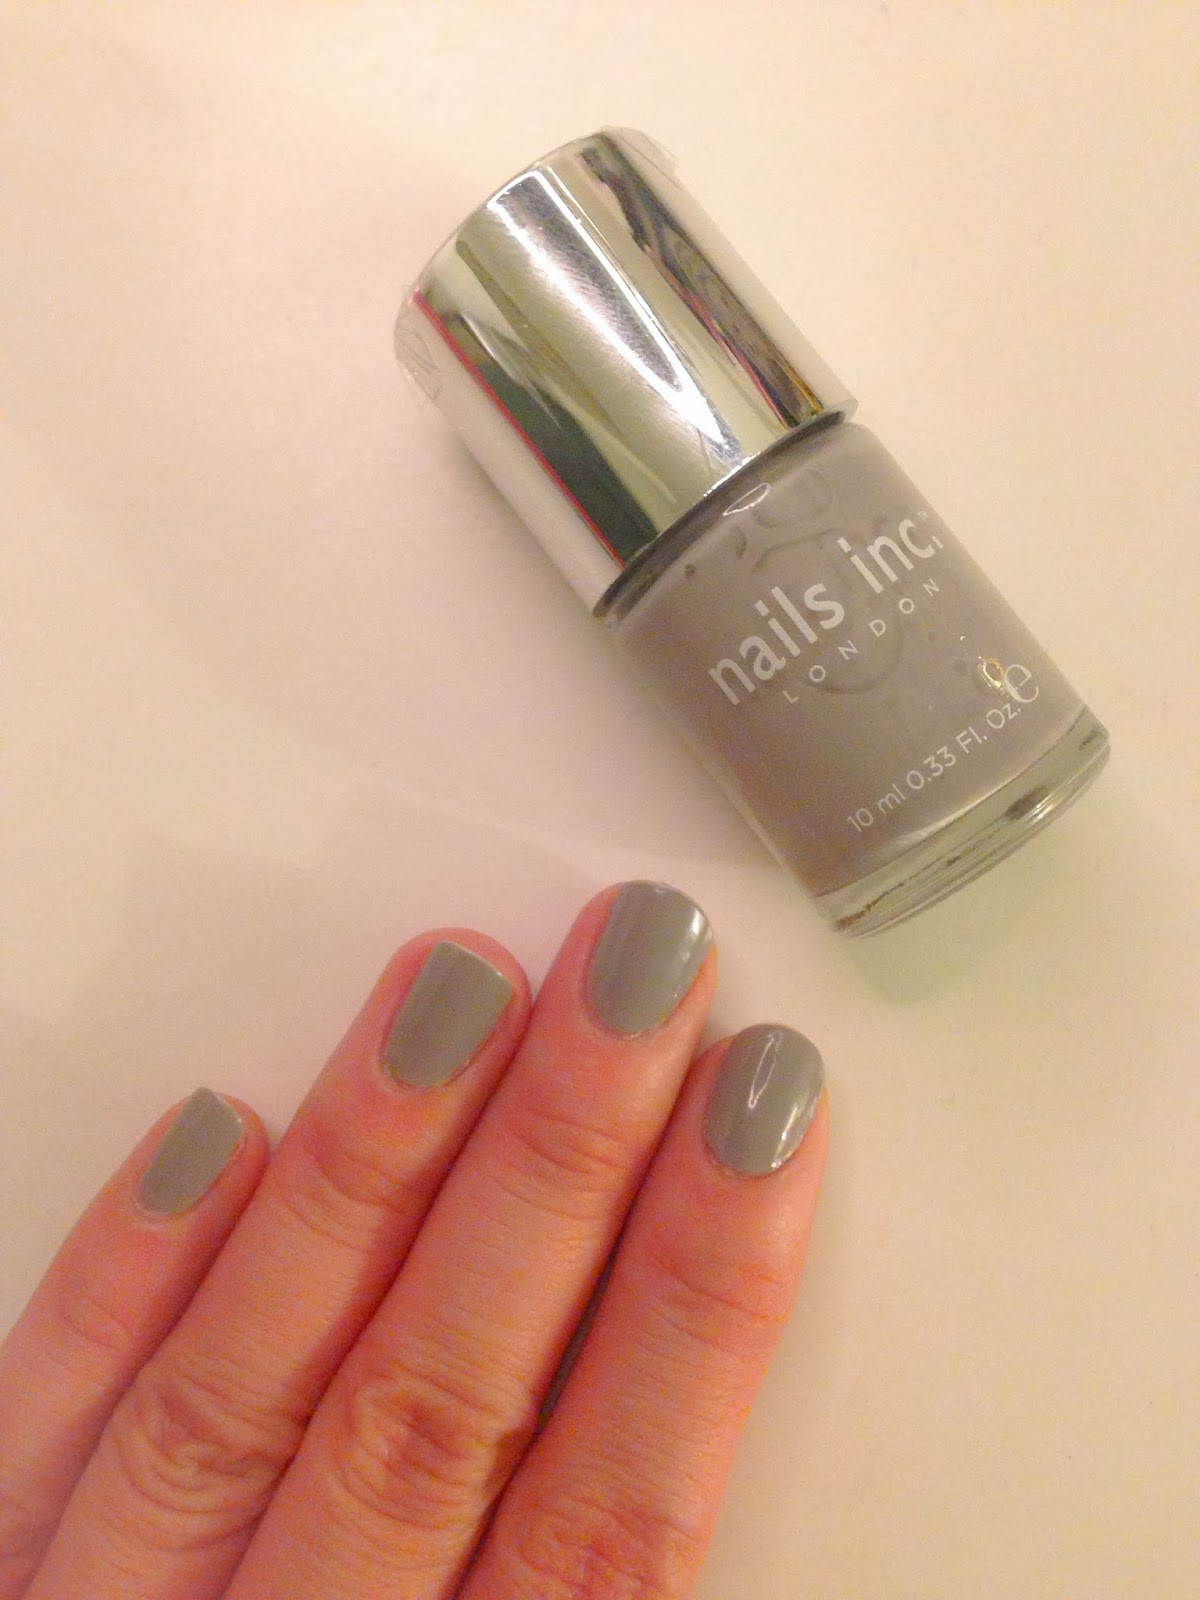 Nails Inc Hyde Park Place: Grey is my new beige